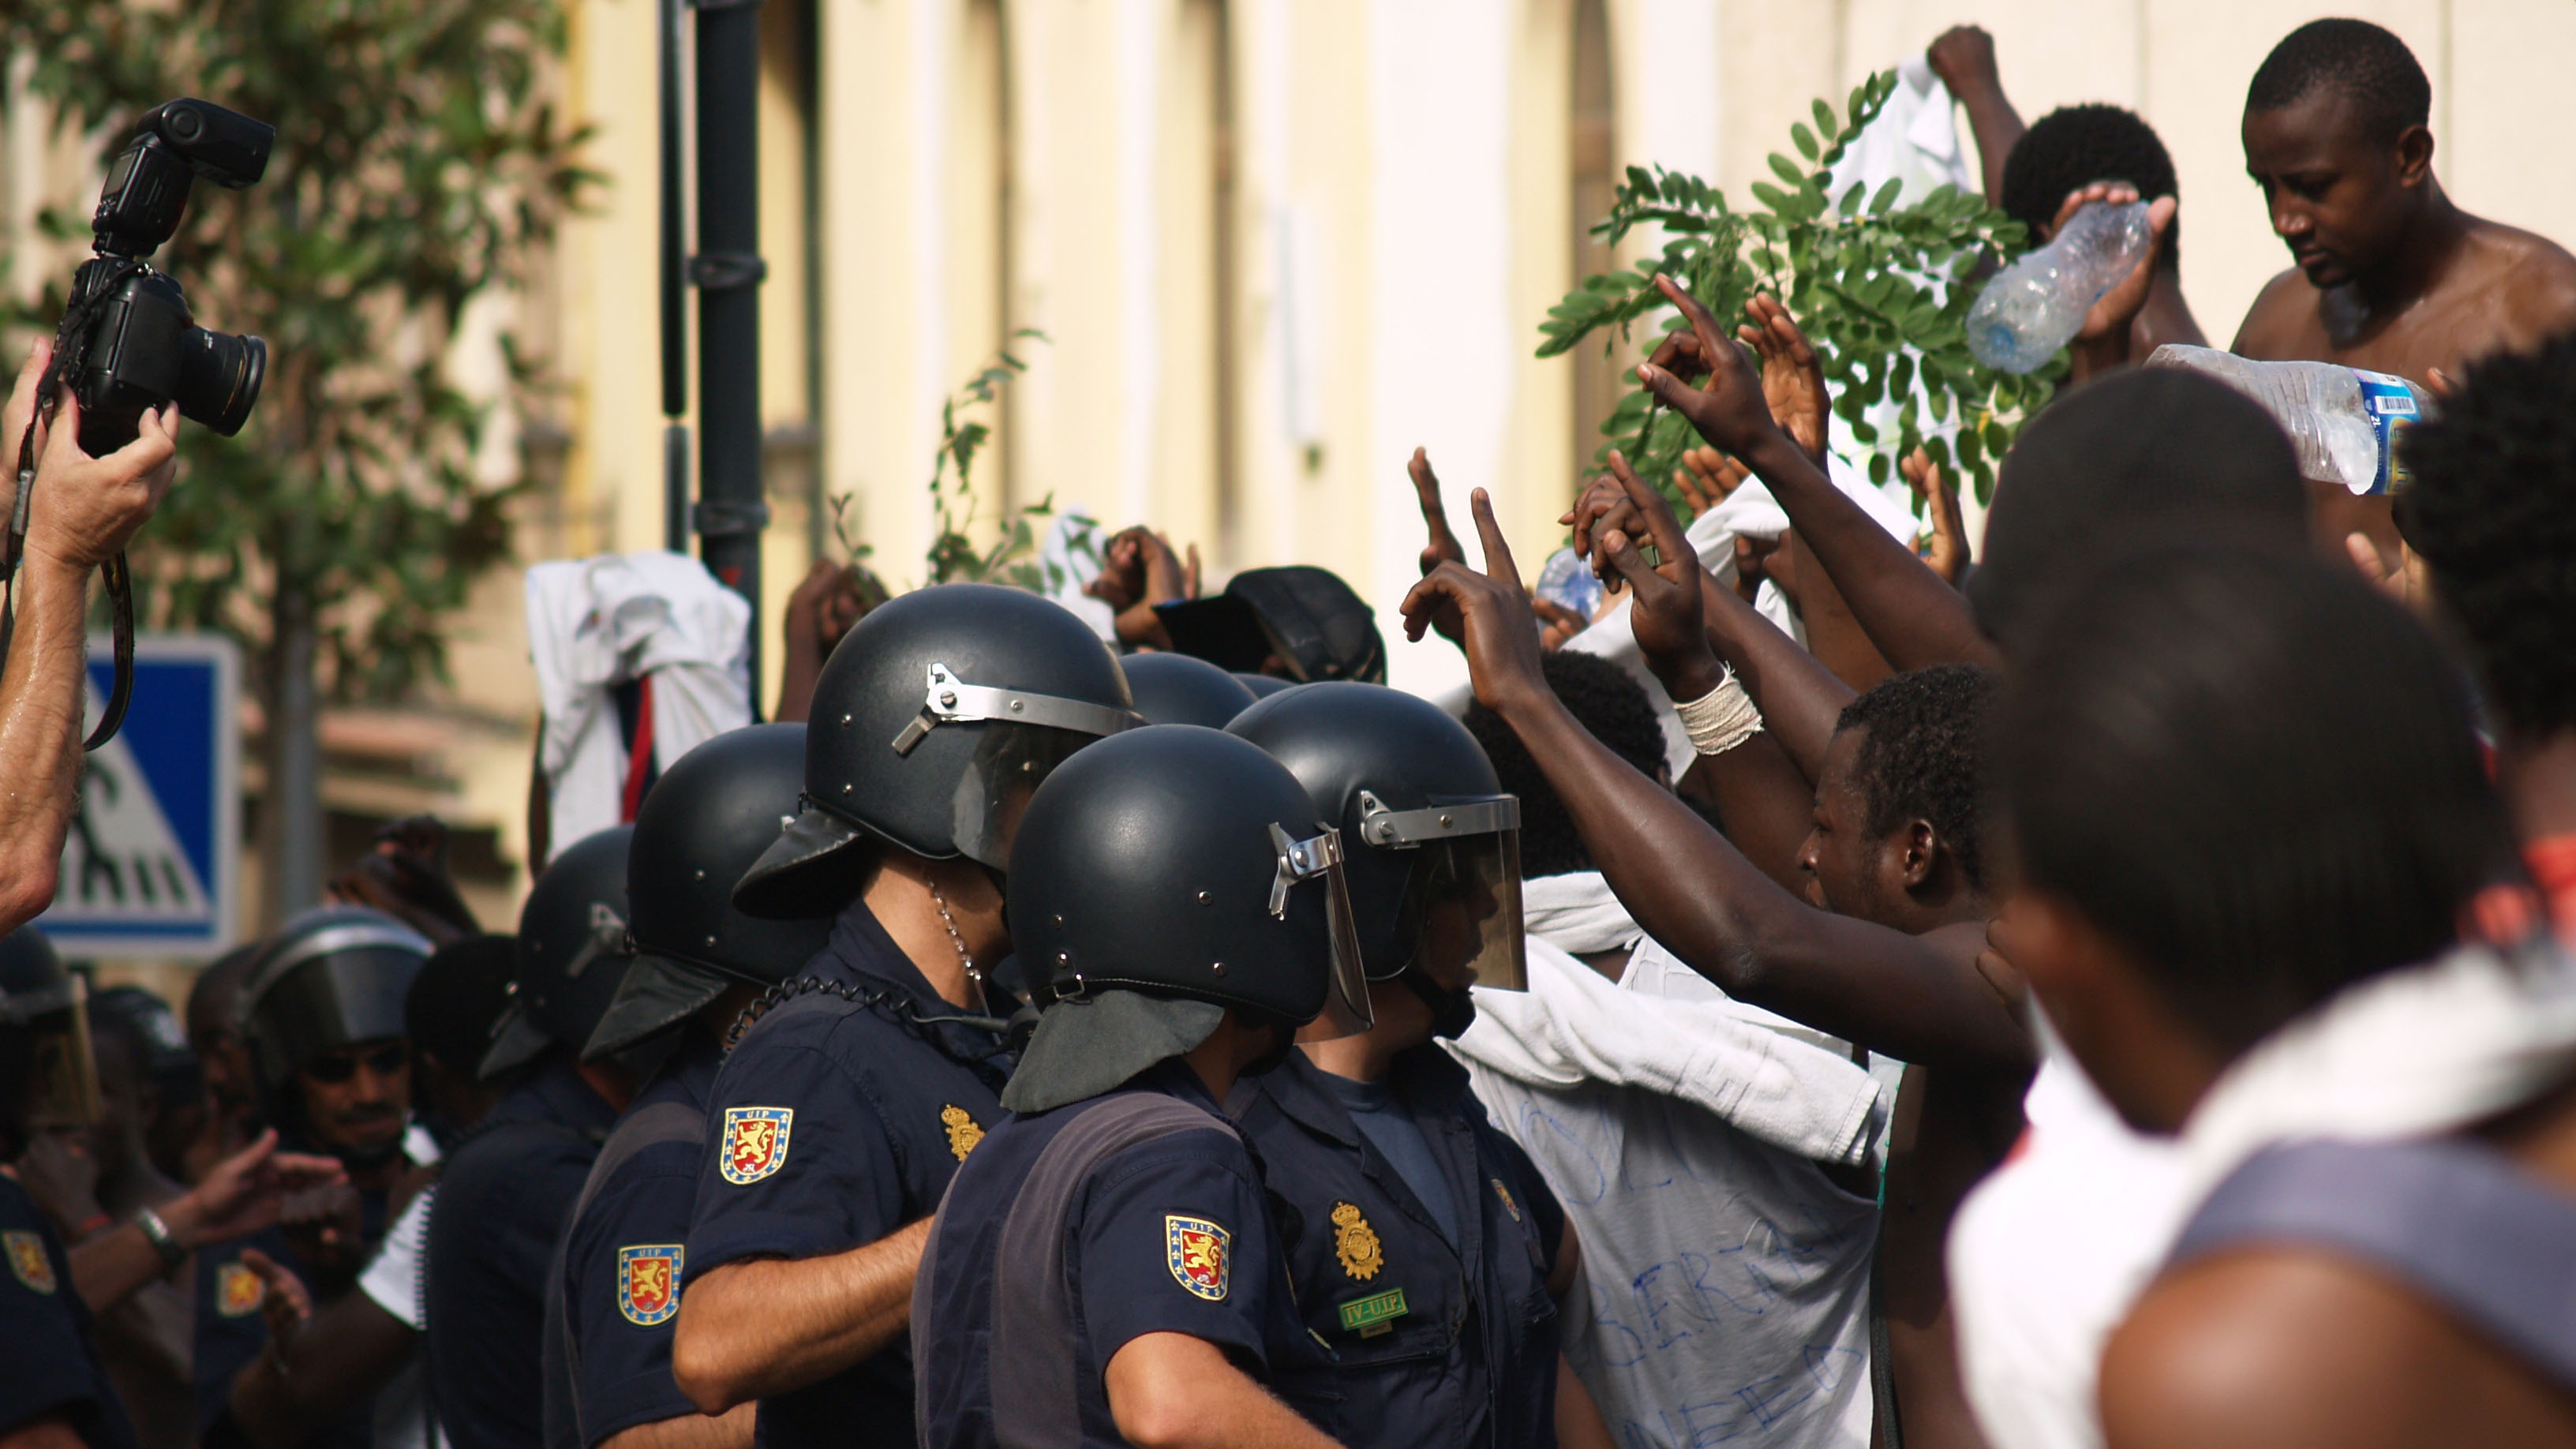 Migrants protesting in the Spanish enclave of Ceuta in North Africa, in 2010. Ceuta and its sister enclave Melilla are Europe's two existing  'offshore solutions' for irregular migrants and asylum seekers on African soil.